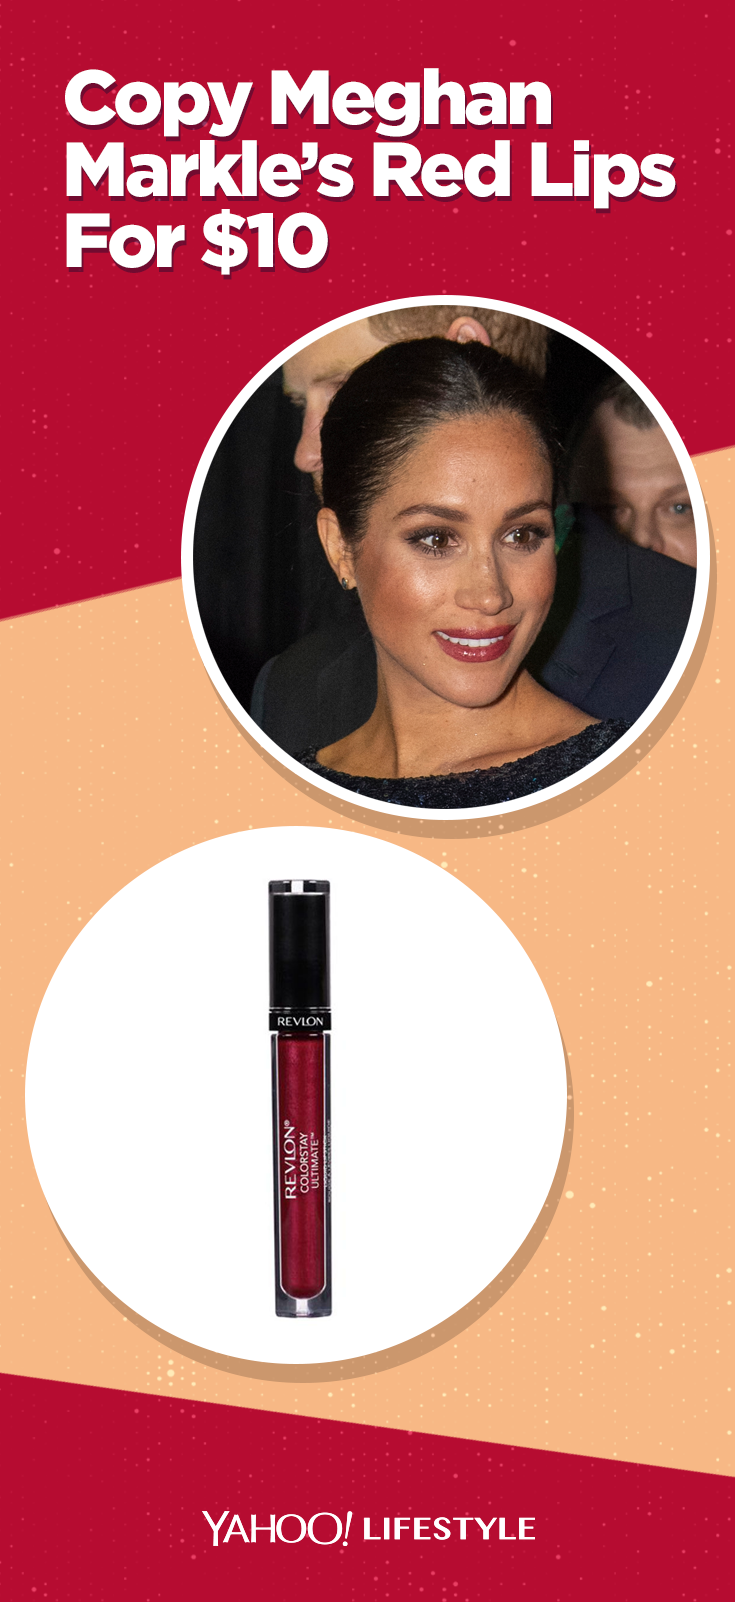 Copy Meghan Markle's berry-red lipstick look for as low as $10 | Shopping |  Red lipstick looks, Berry lipstick, Red lipsticks